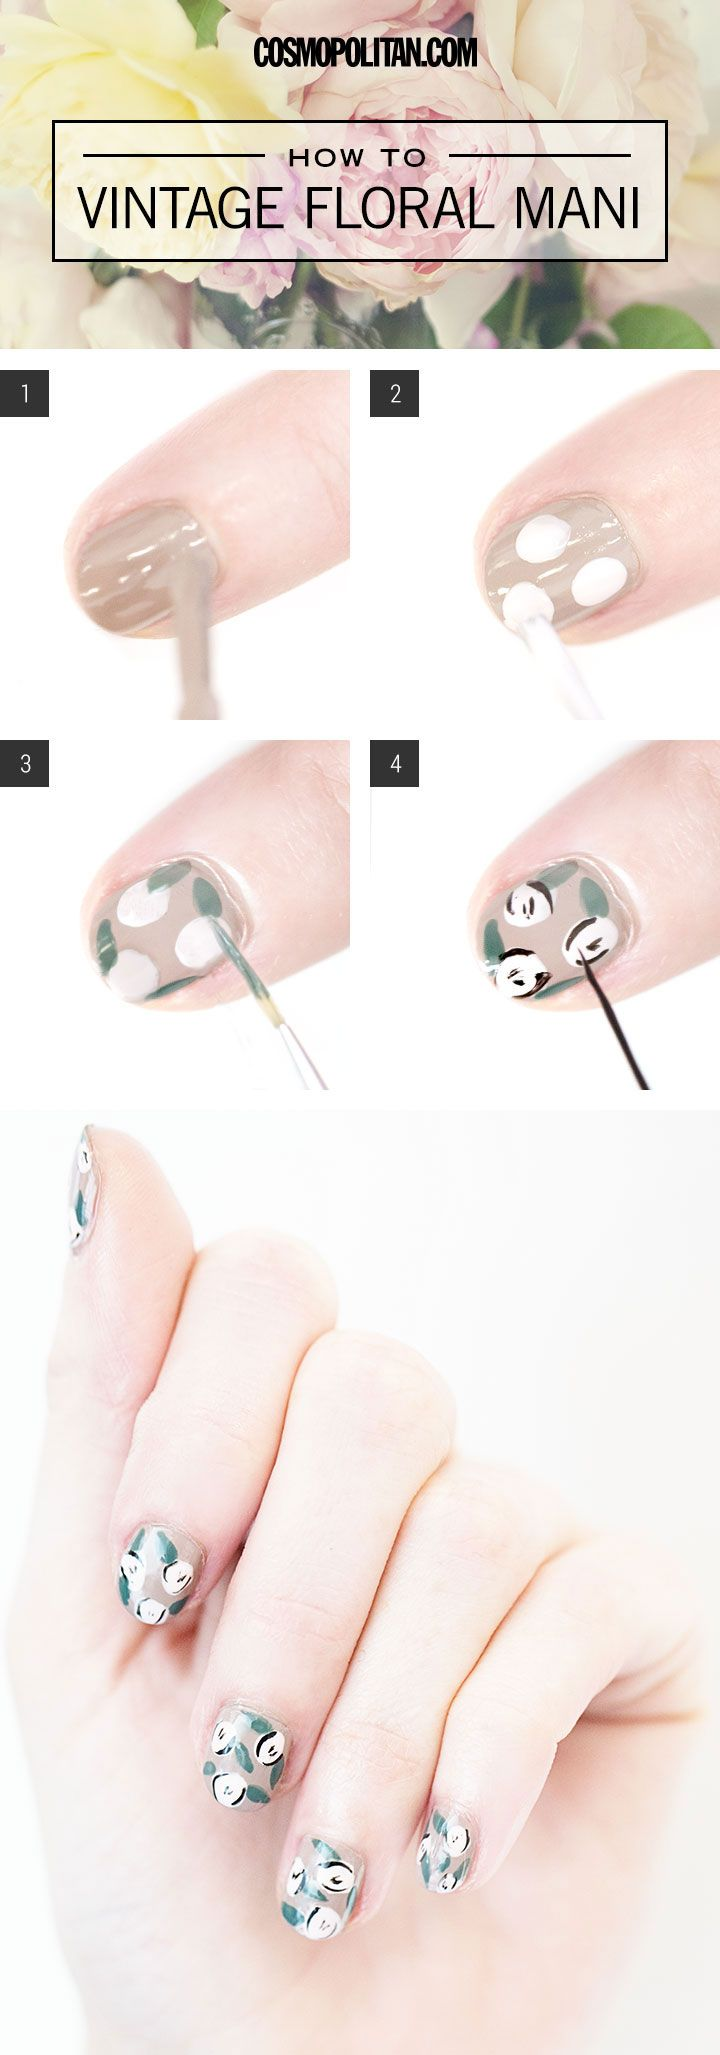 Recreate this adorable vintage-looking floral mani for yourself!